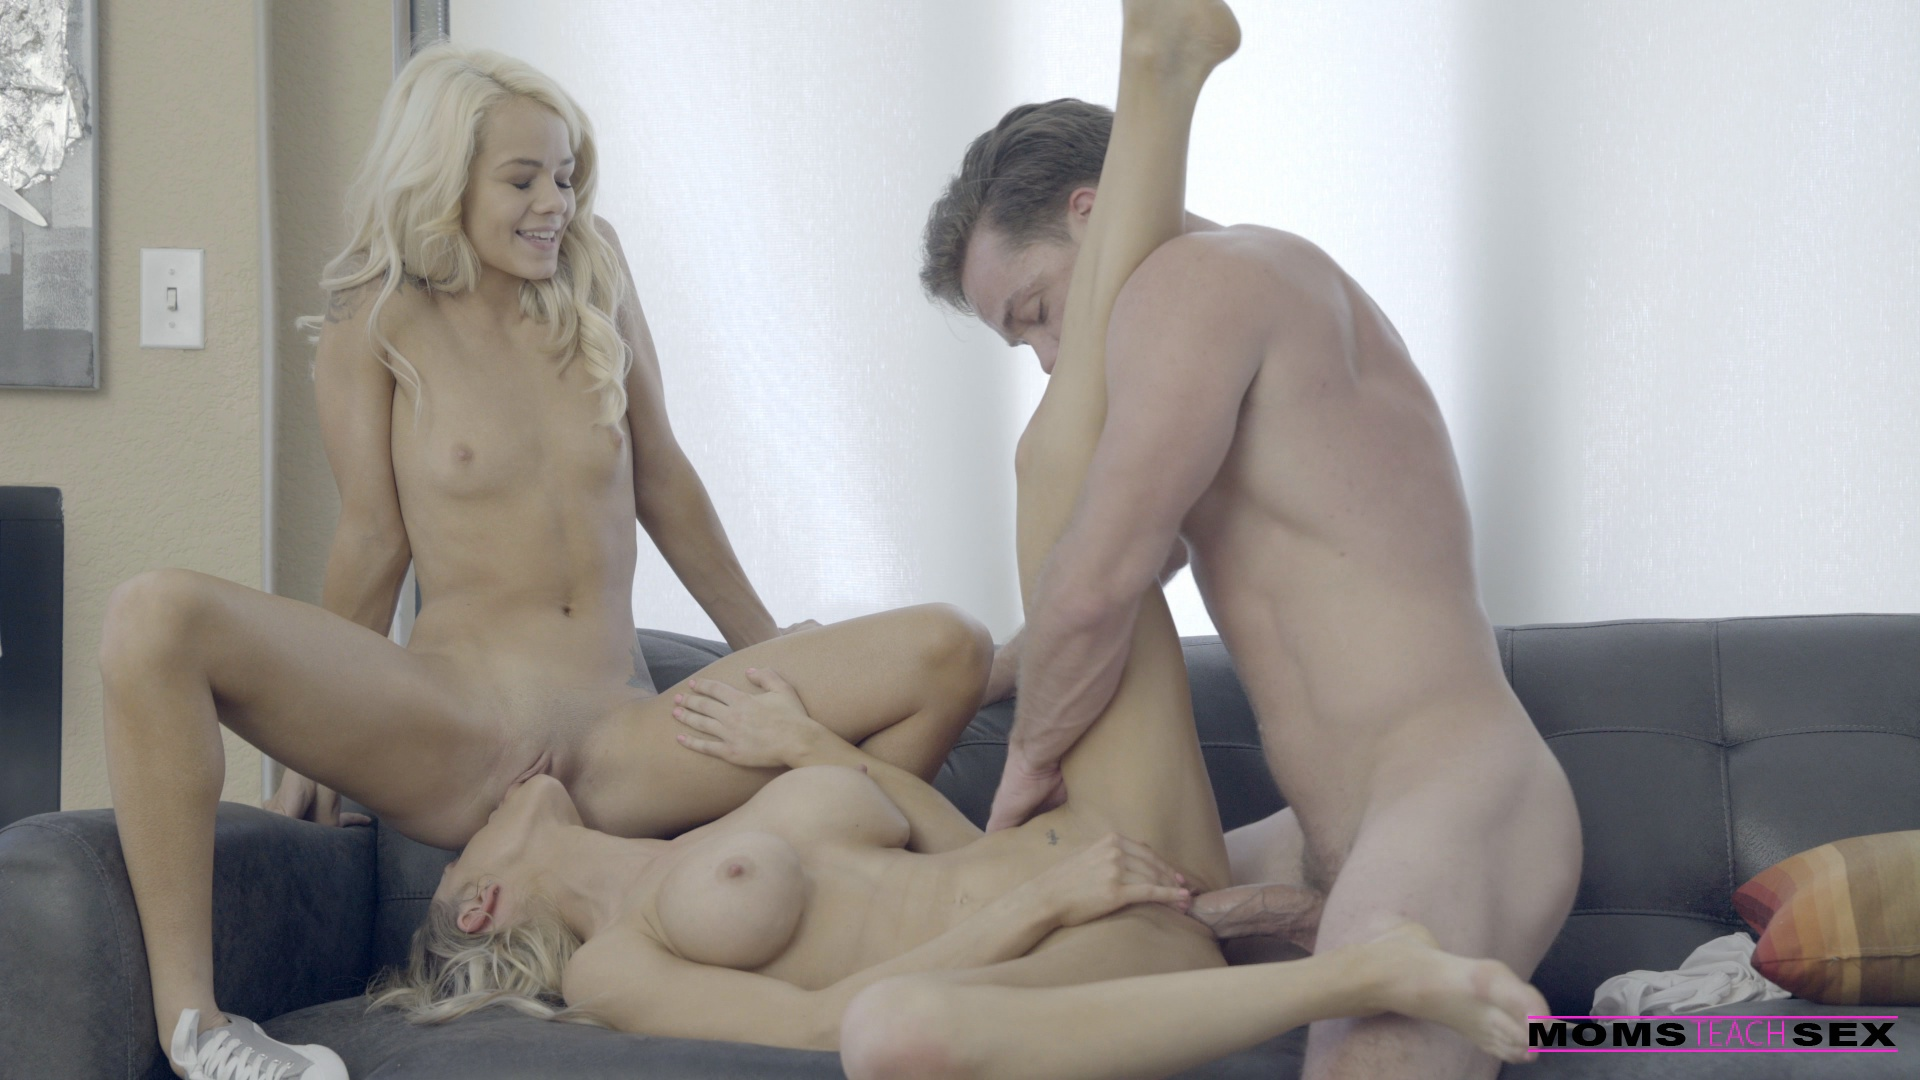 MomsTeachSex.com - Alix Lynx,Elsa Jean: Listen To Your Mommy - S6:E5